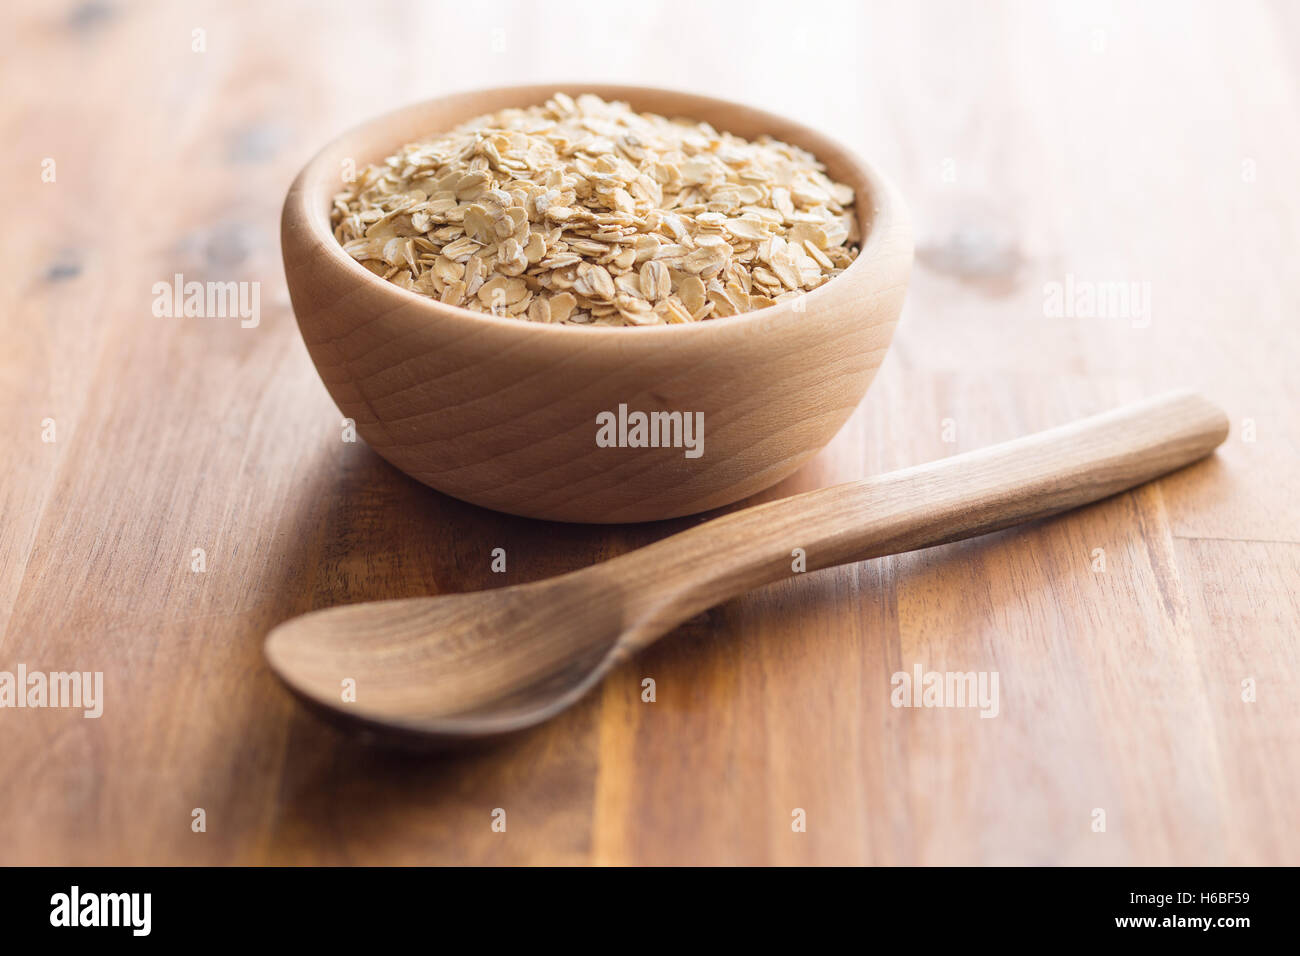 Dry rolled oatmeal in wooden bowl. - Stock Image